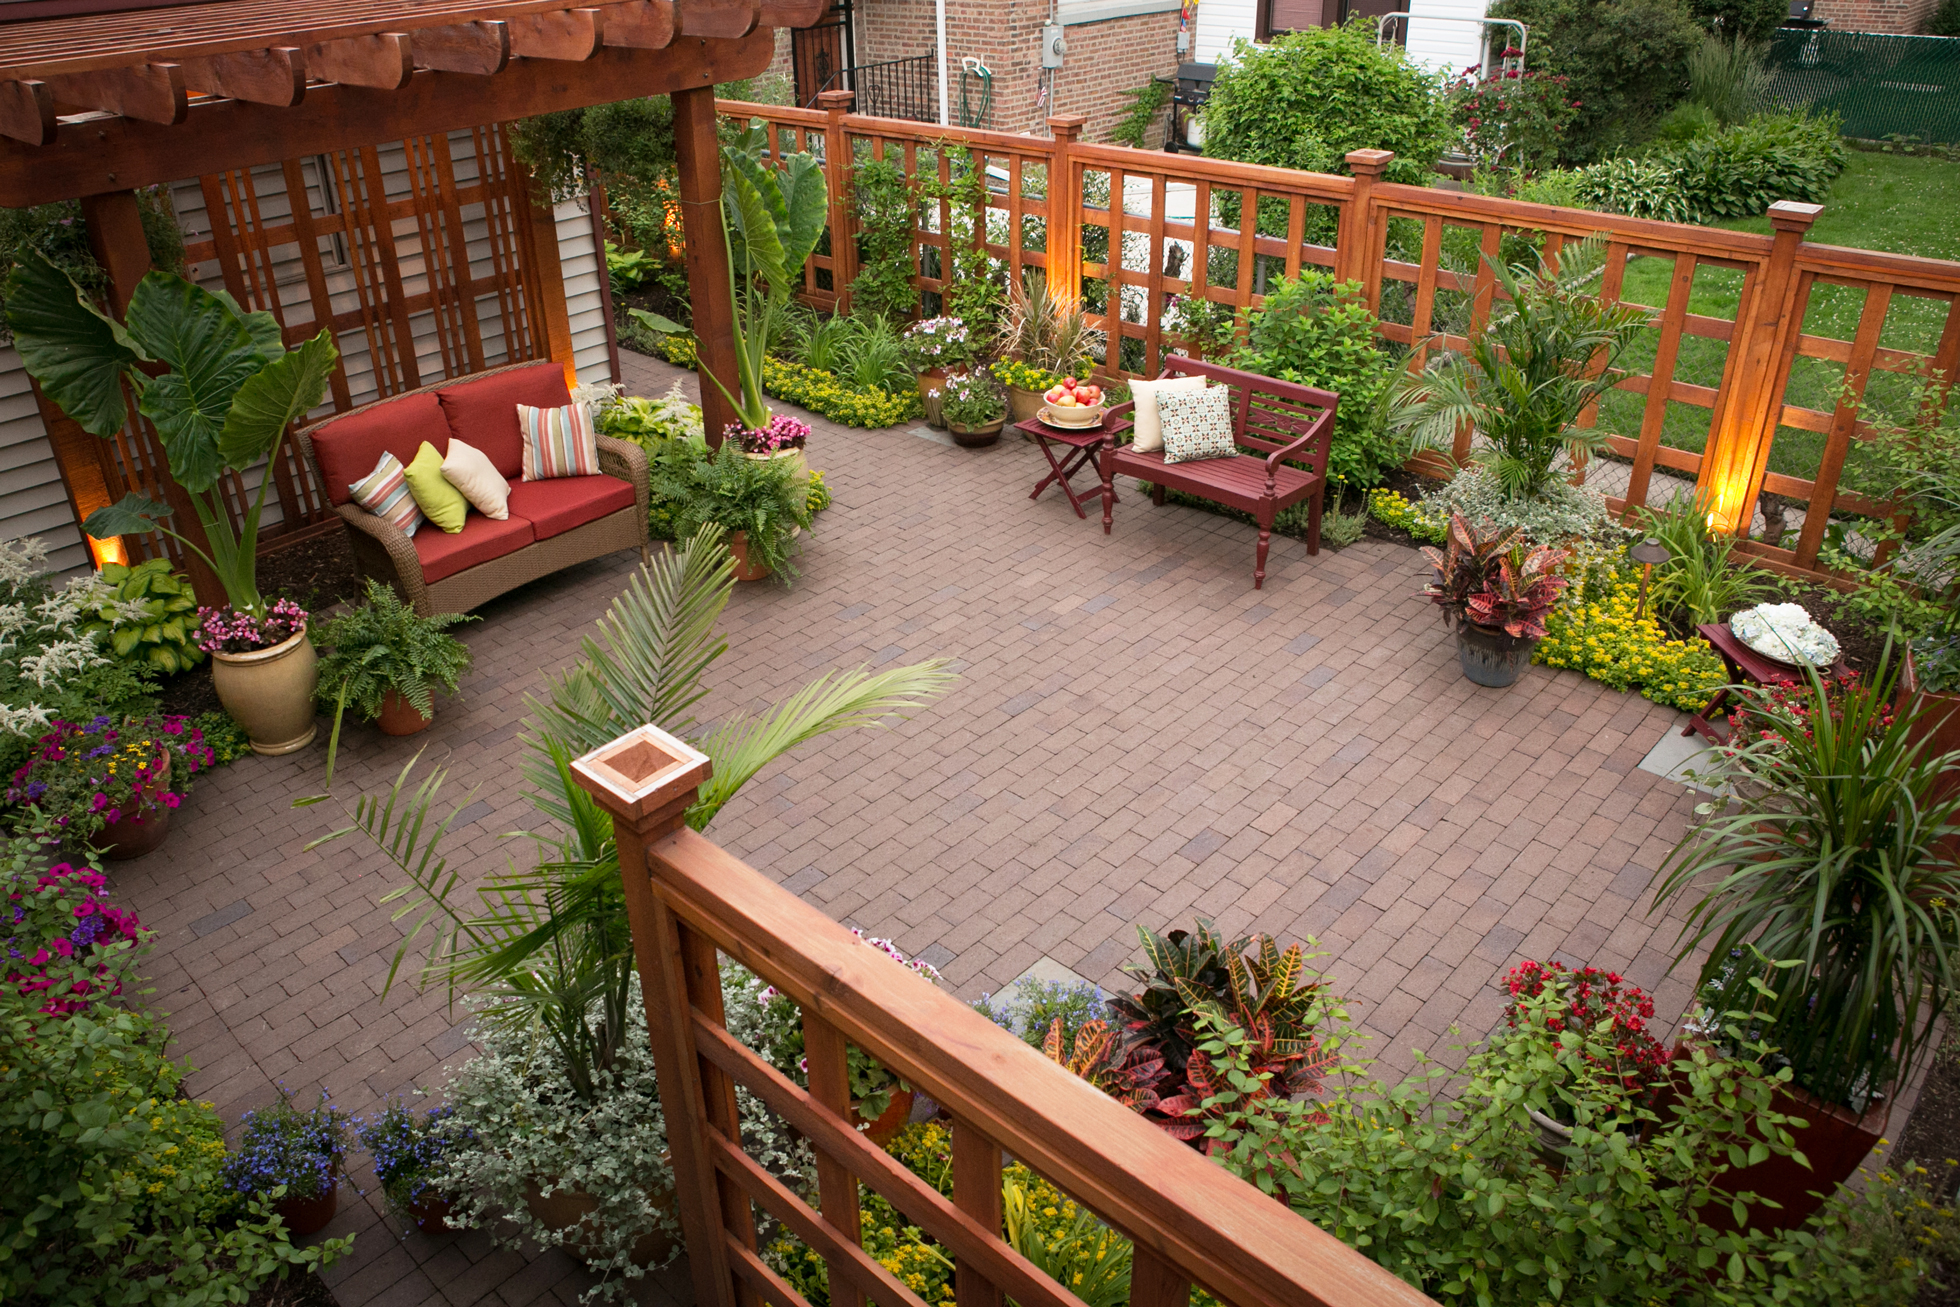 A backyard pergola and wood fence